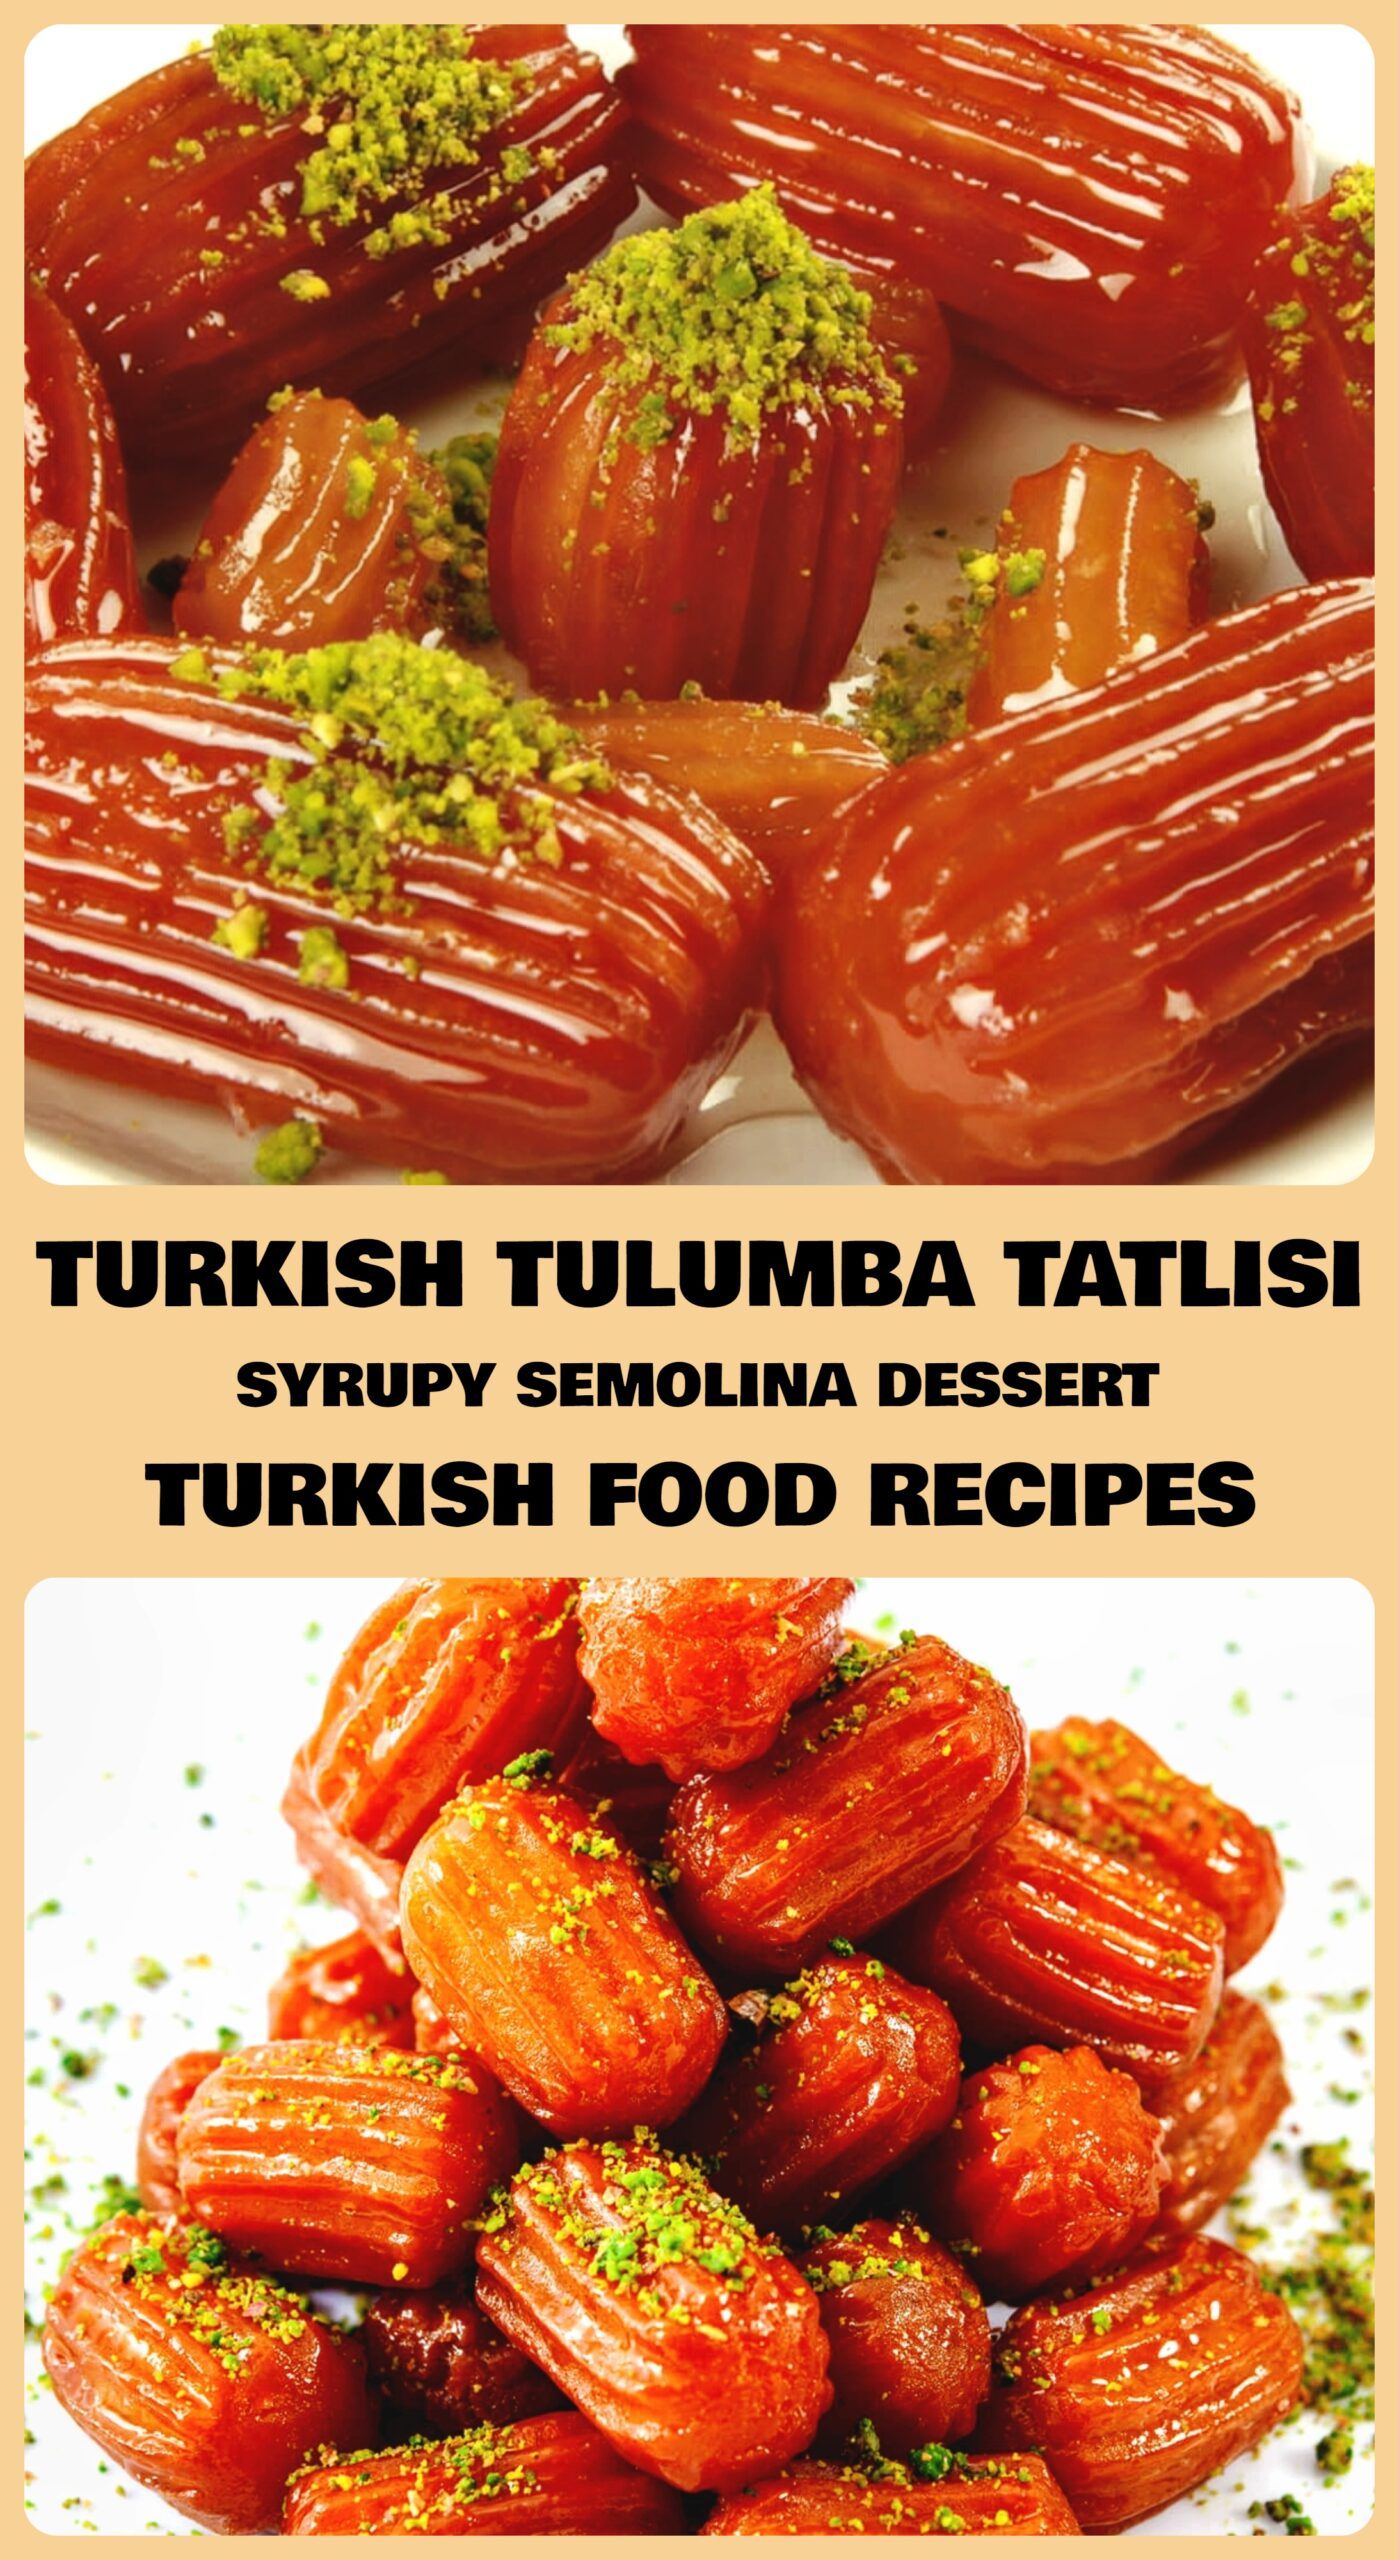 Turkish Tulumba Tatlisi - Syrupy Semolina Dessert Recipe